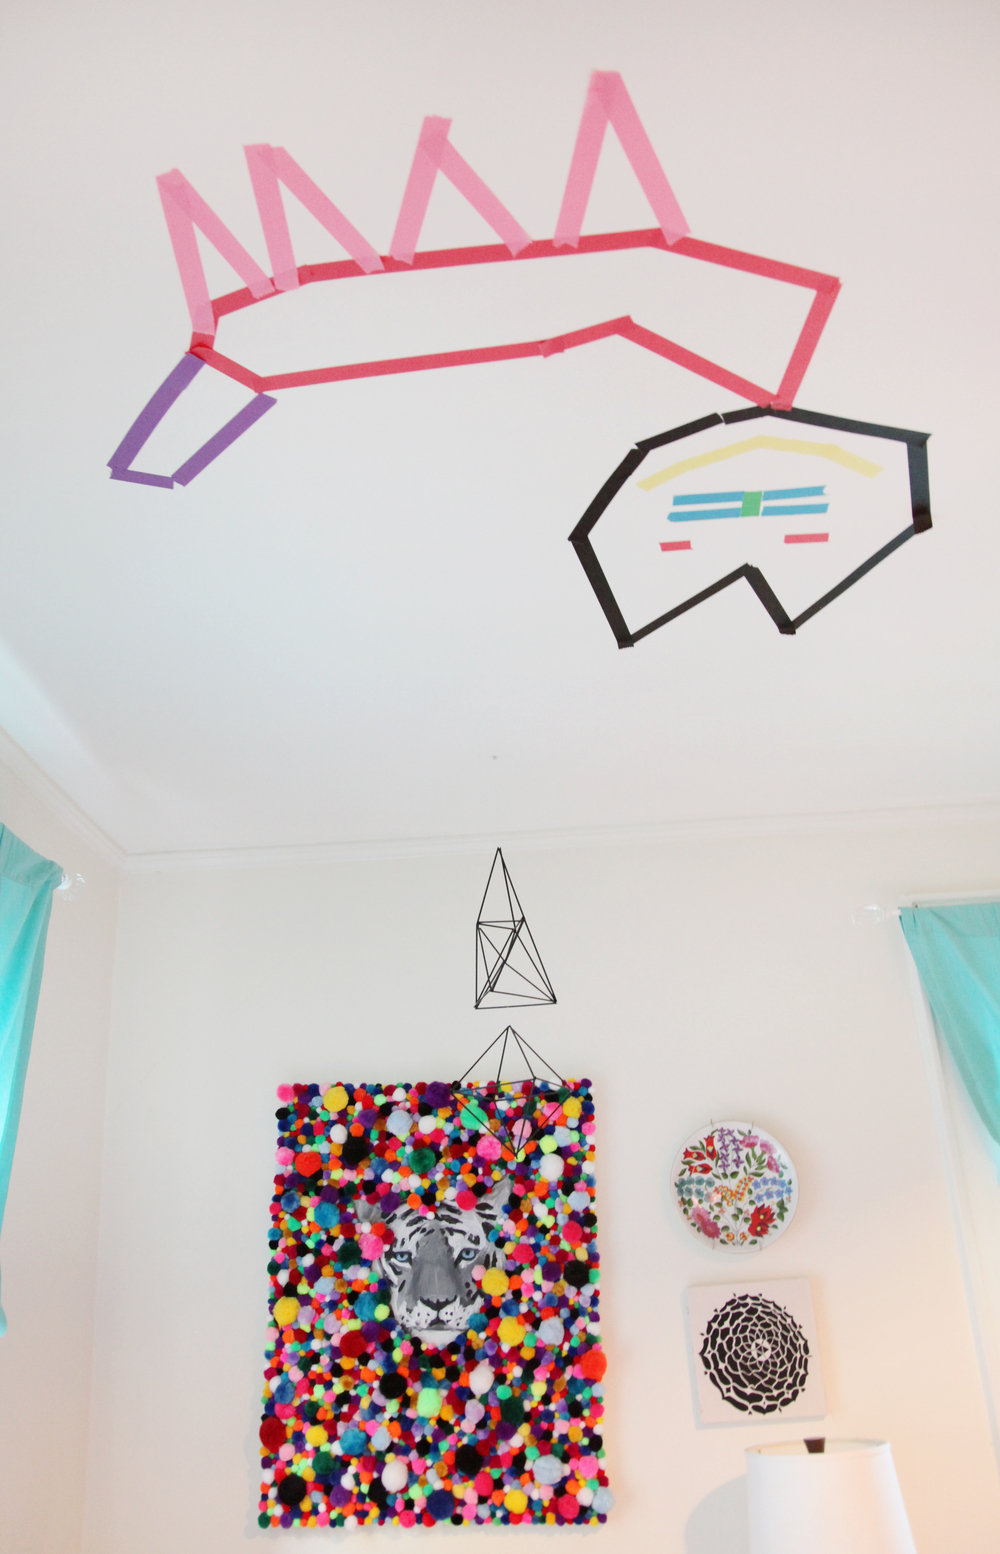 Heather's washi tape ceiling cat welcomes a sweet slumber.